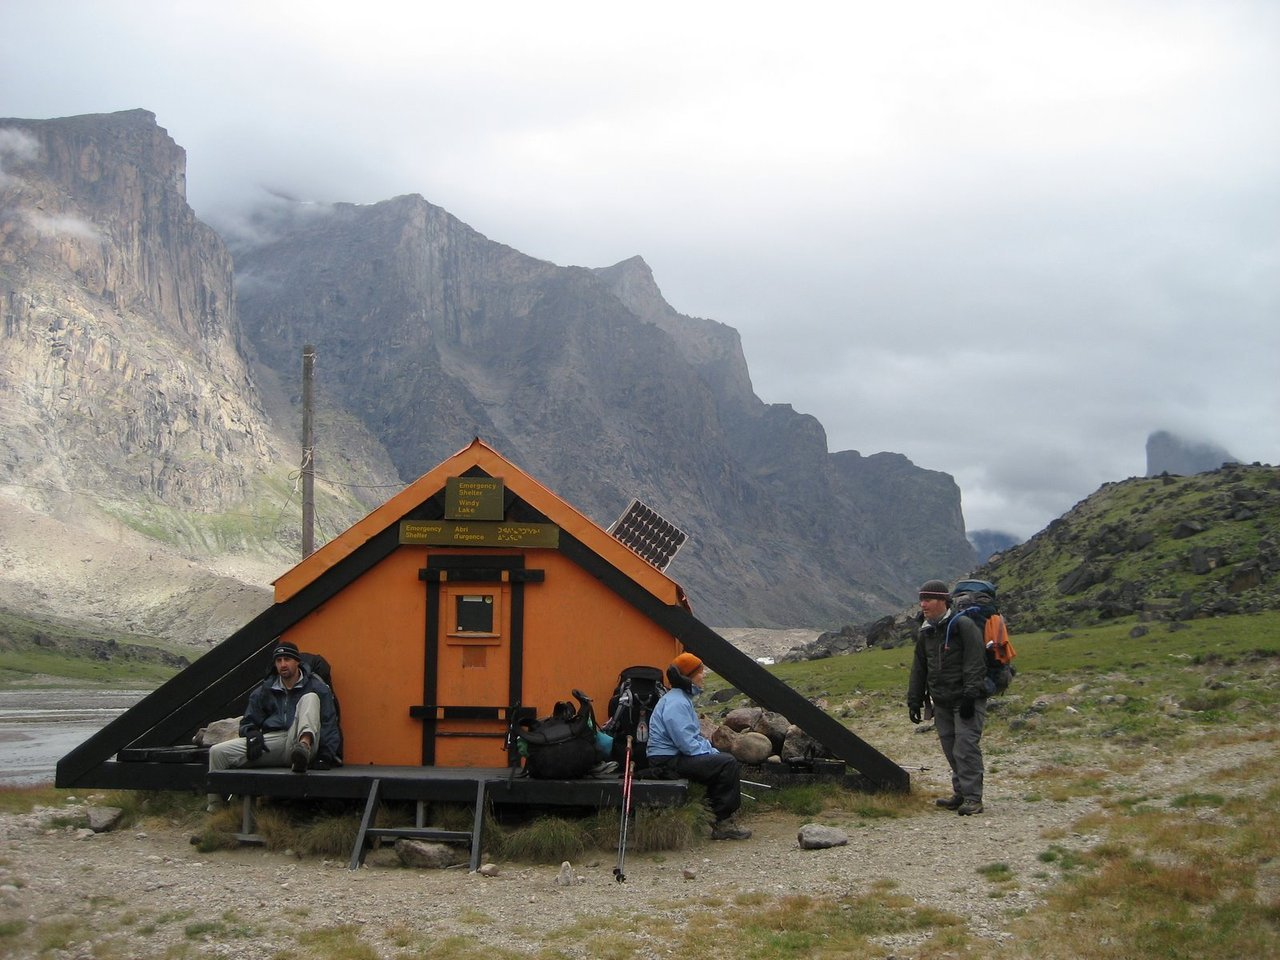 cabinporn:  An emergency shelter in the Akshayuk Pass in Auyuittuq National Park on Baffin Island. Submitted by Ben Odenheimer, photo by Brad Kueneman.